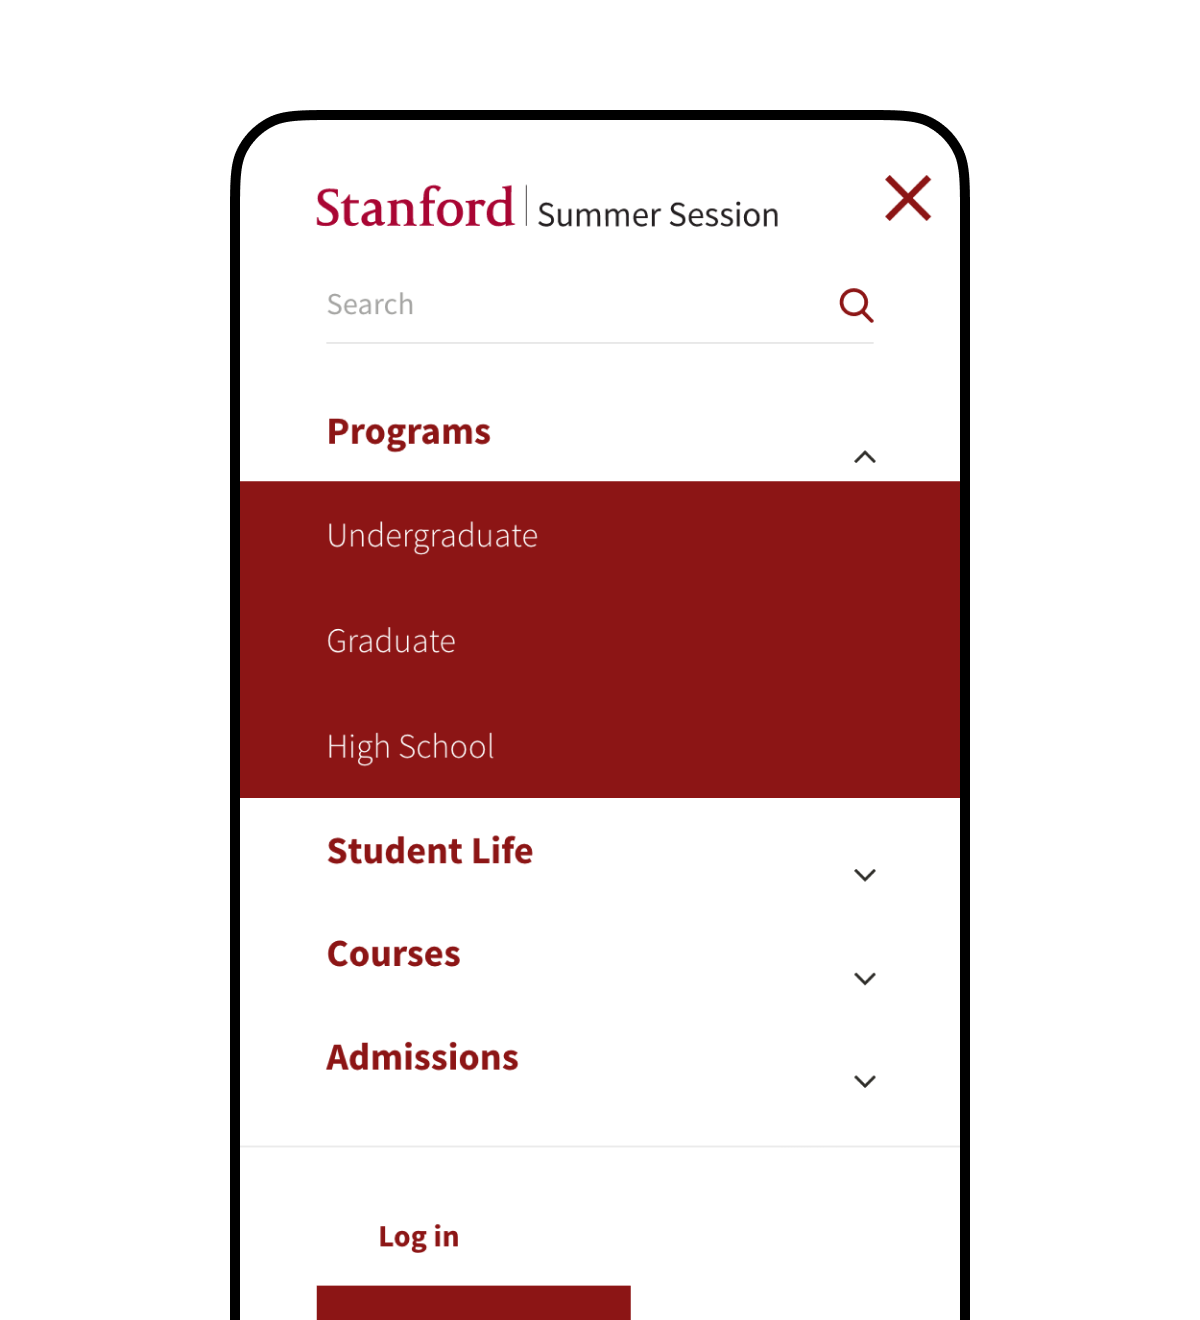 A screenshot of the Stanford Summer Session mobile navigation